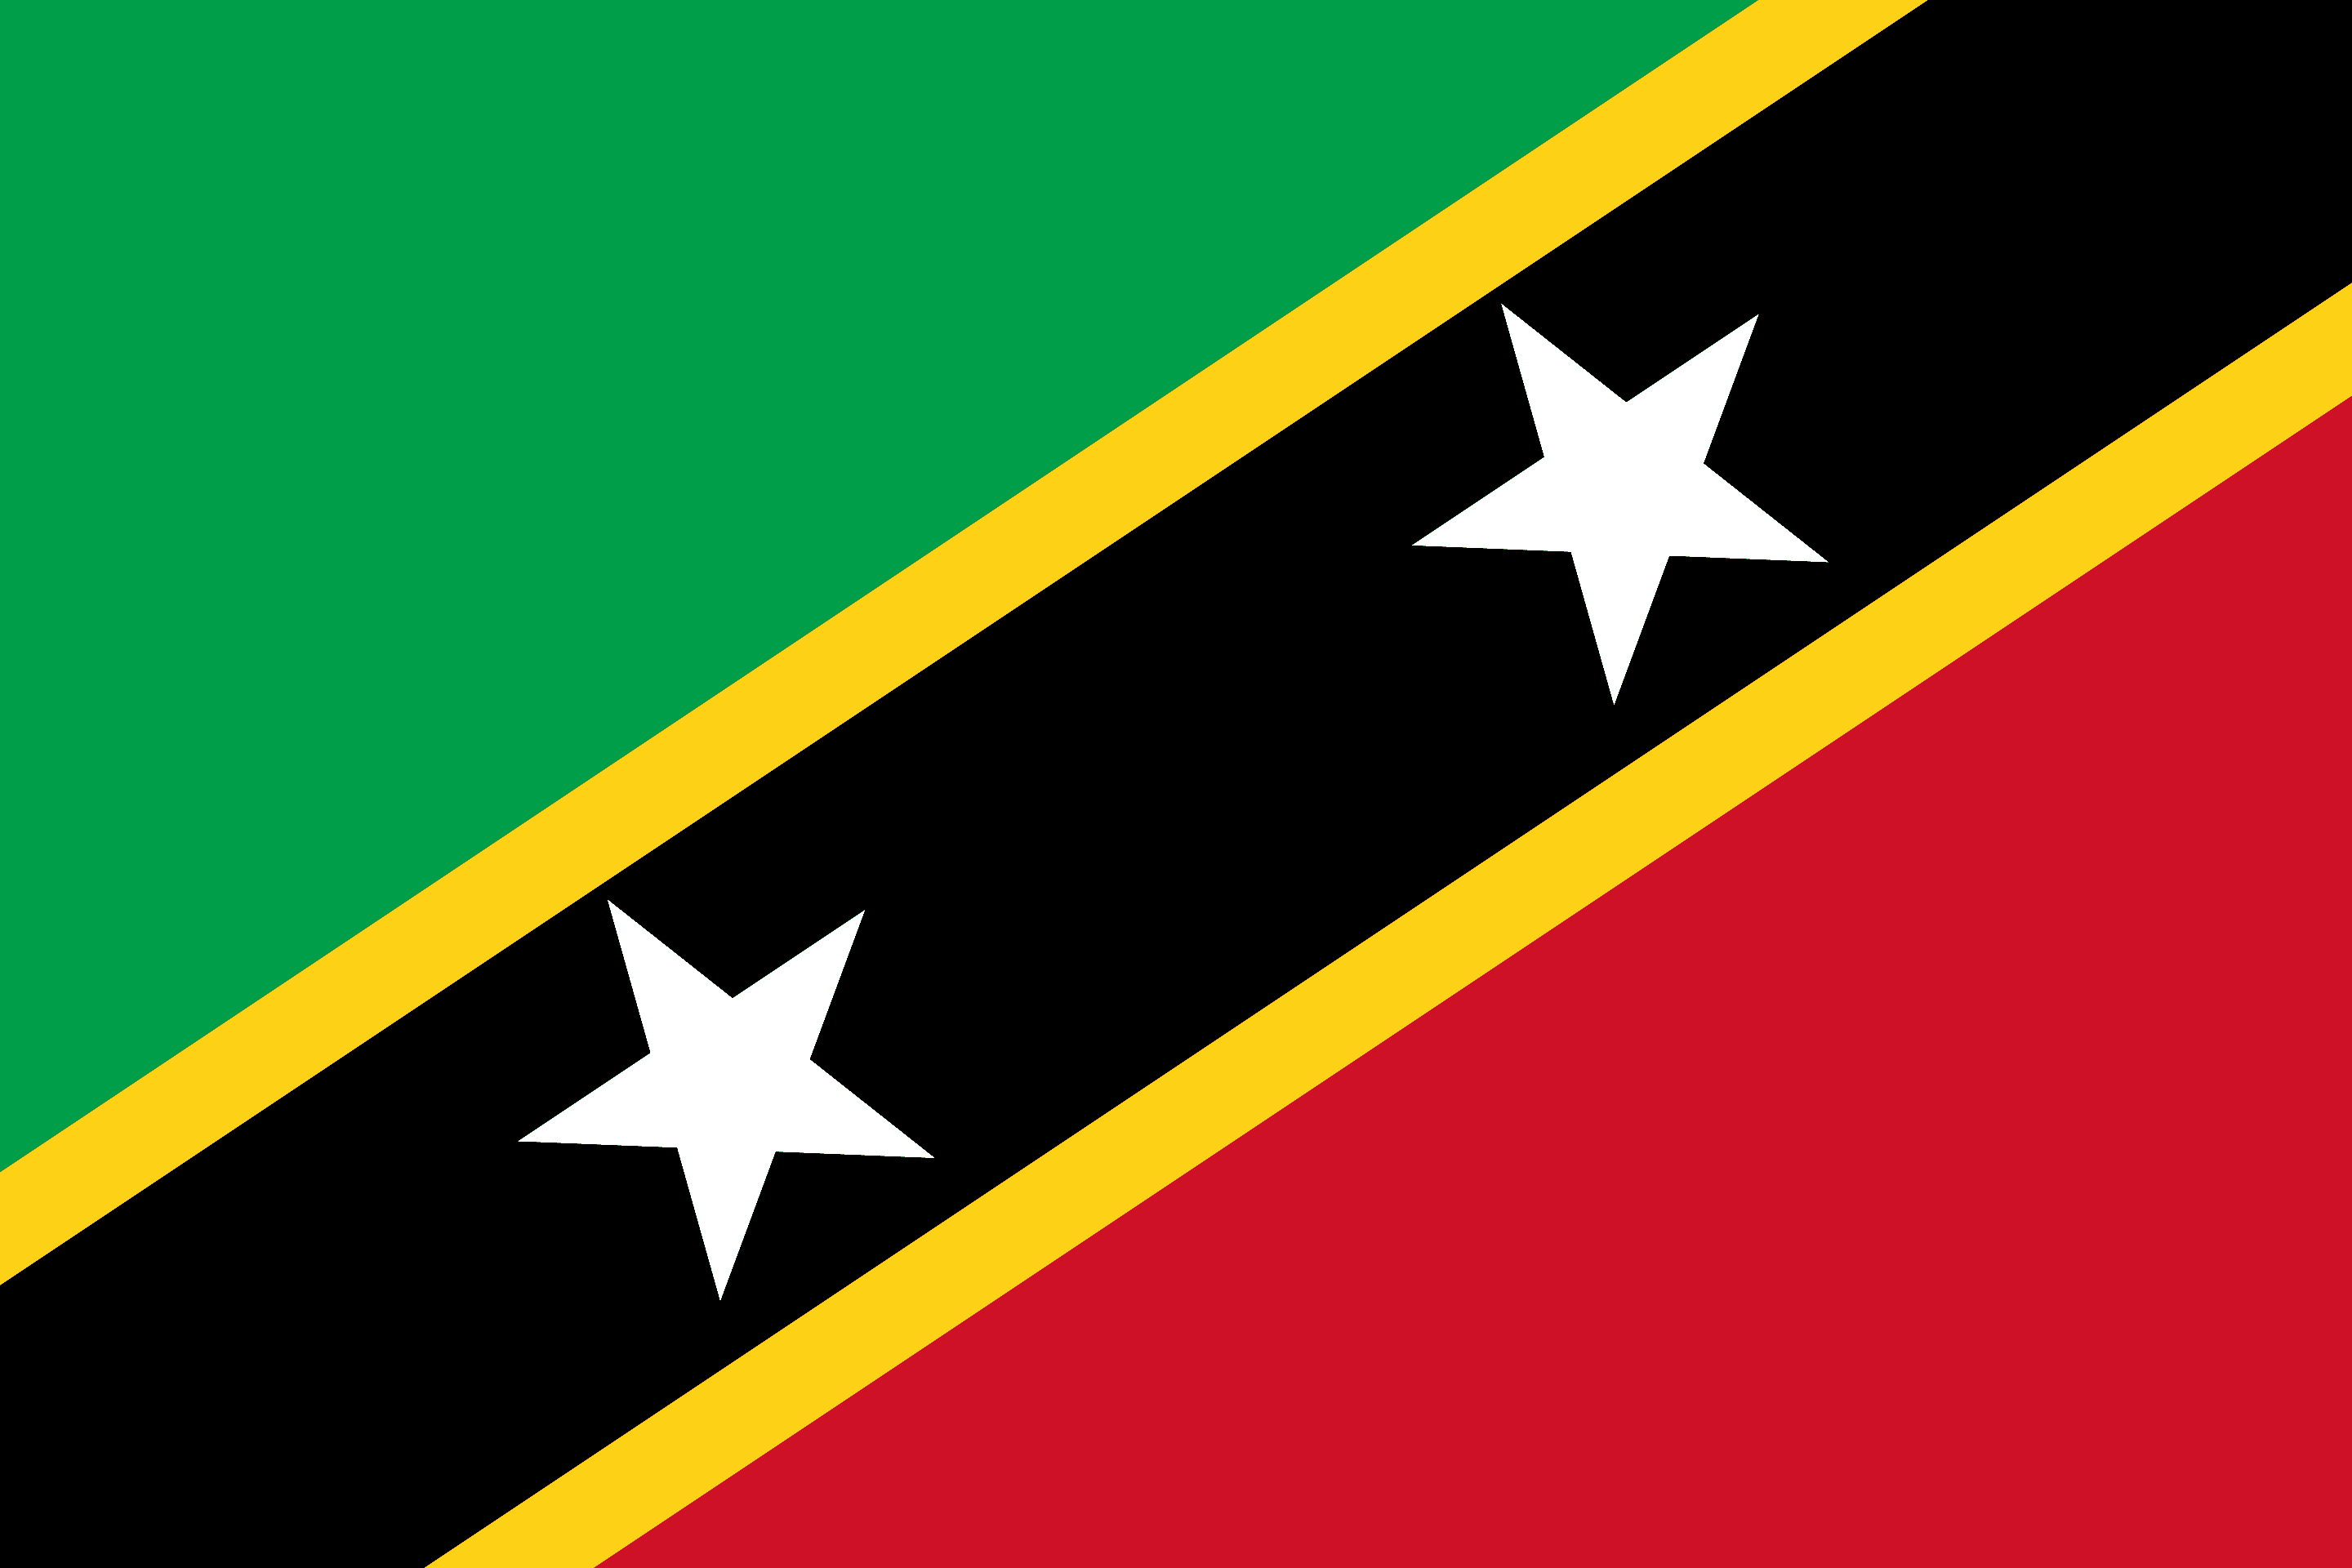 St. Kitts and Nevis Flag - St. Kitts and Nevis Drone Laws